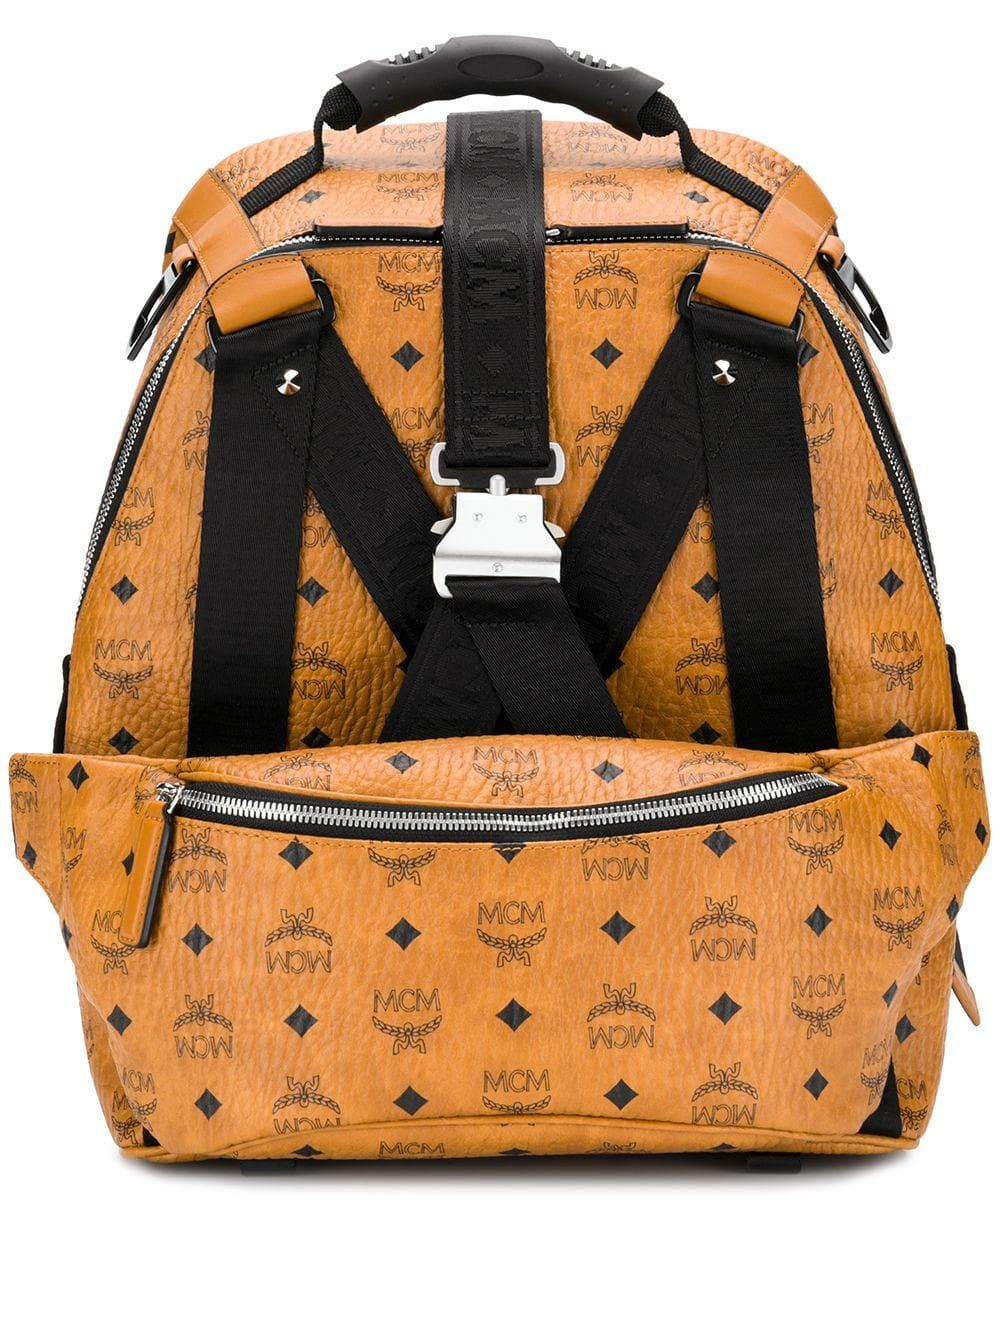 MCM logo textured backpack Brown (With images)   Mcm logo